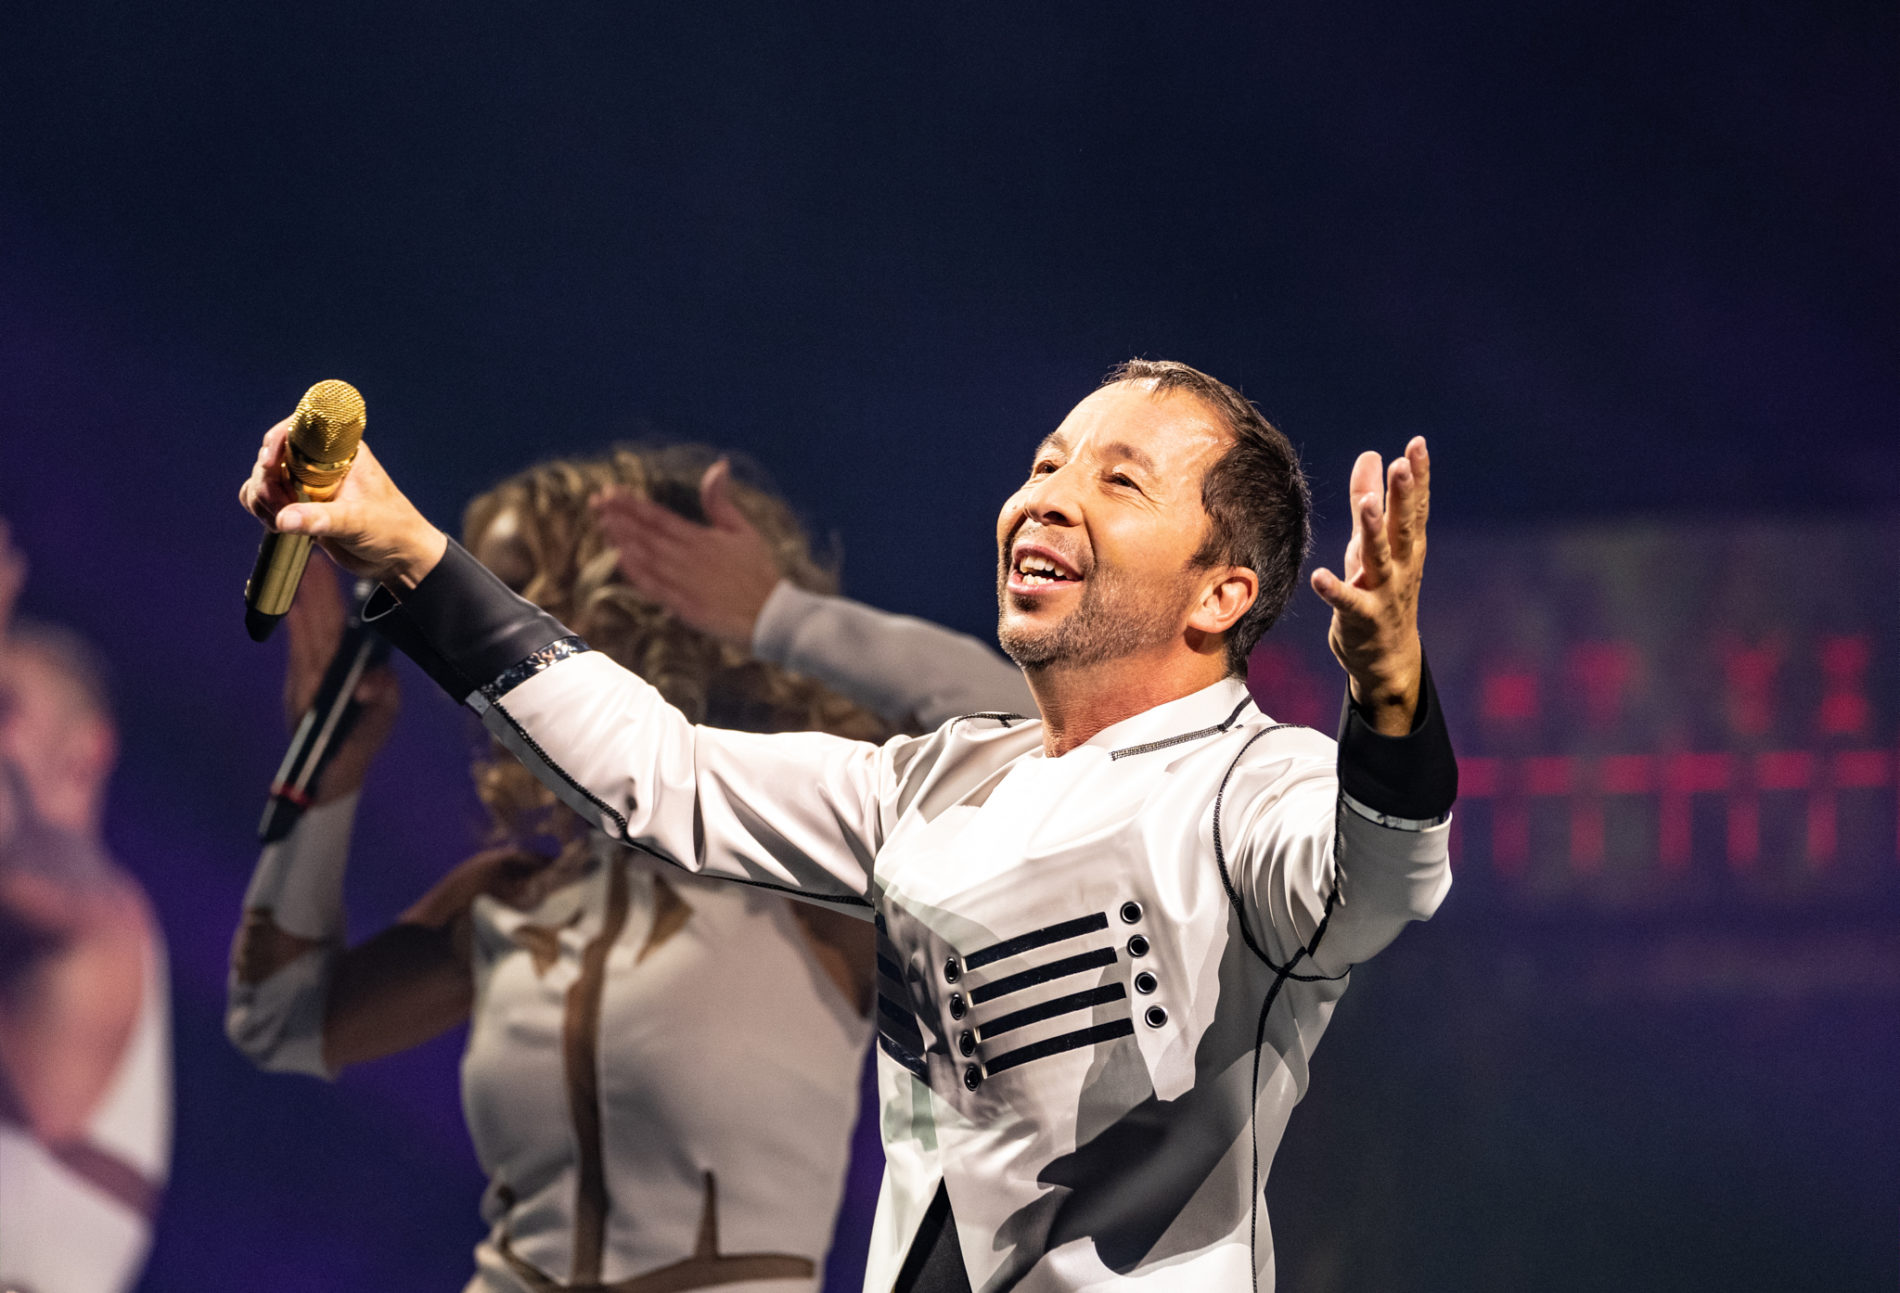 DJ Bobo – There's a party in der SAP Arena Mannheim